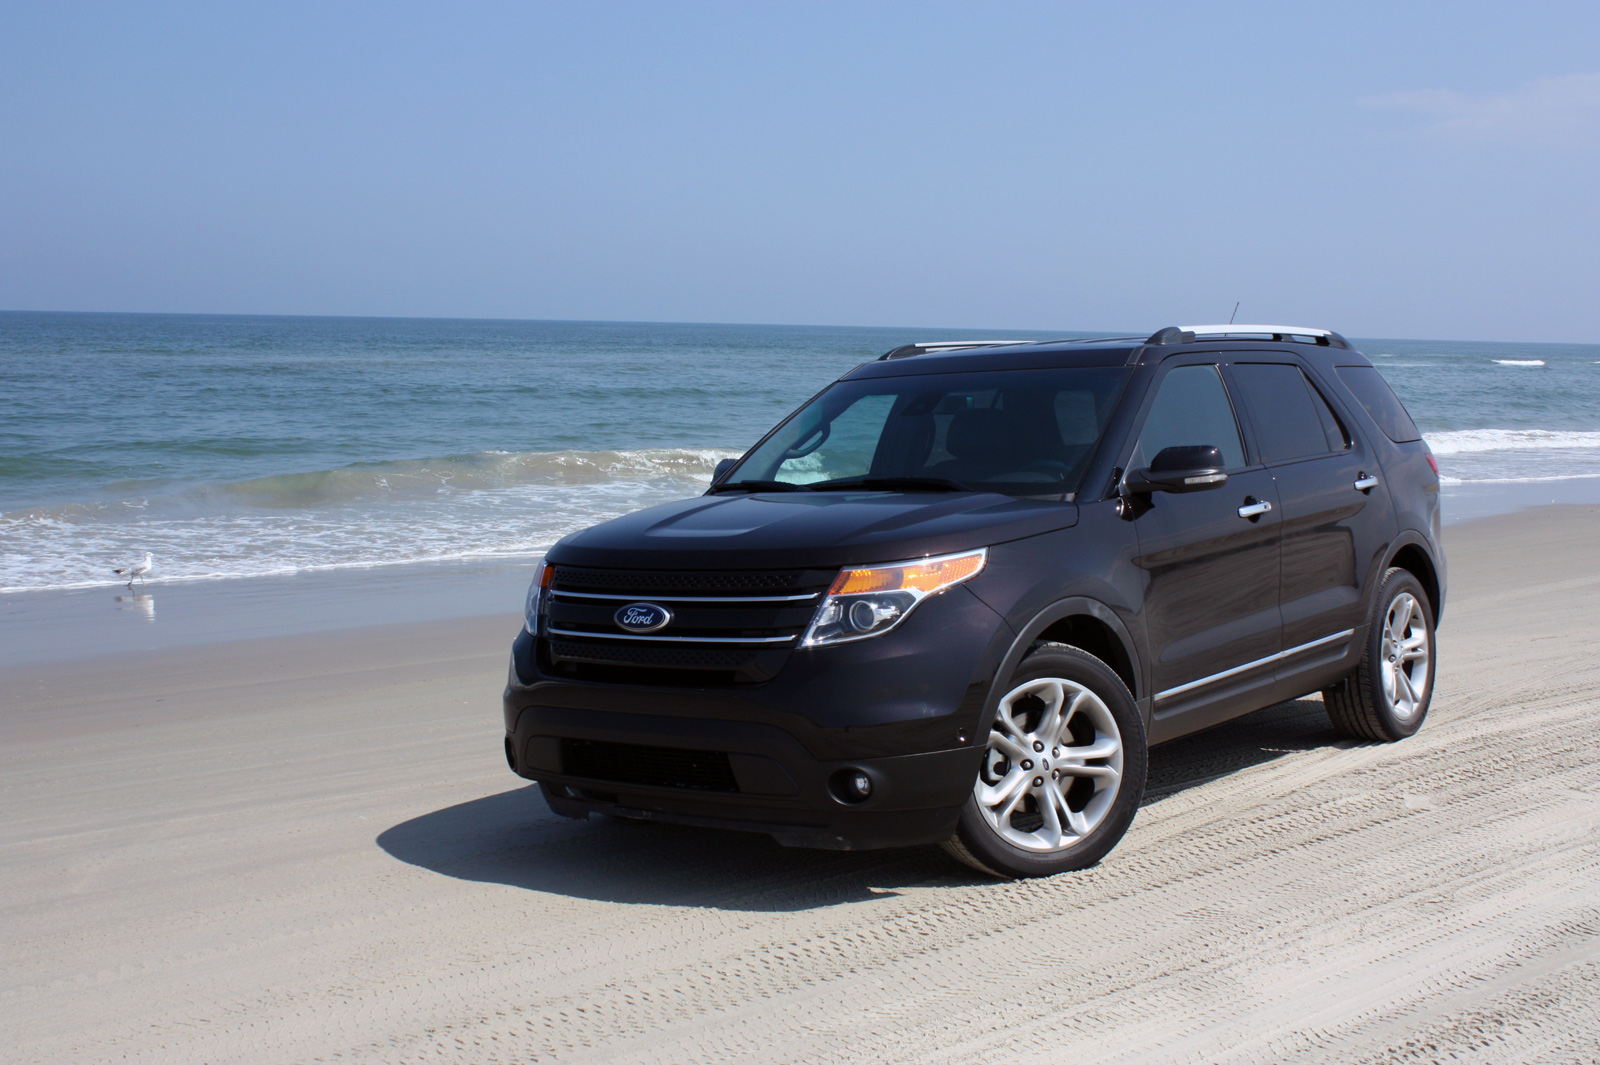 2013 ford explorer limited awd autoblog - Ford Explorer 2014 Limited